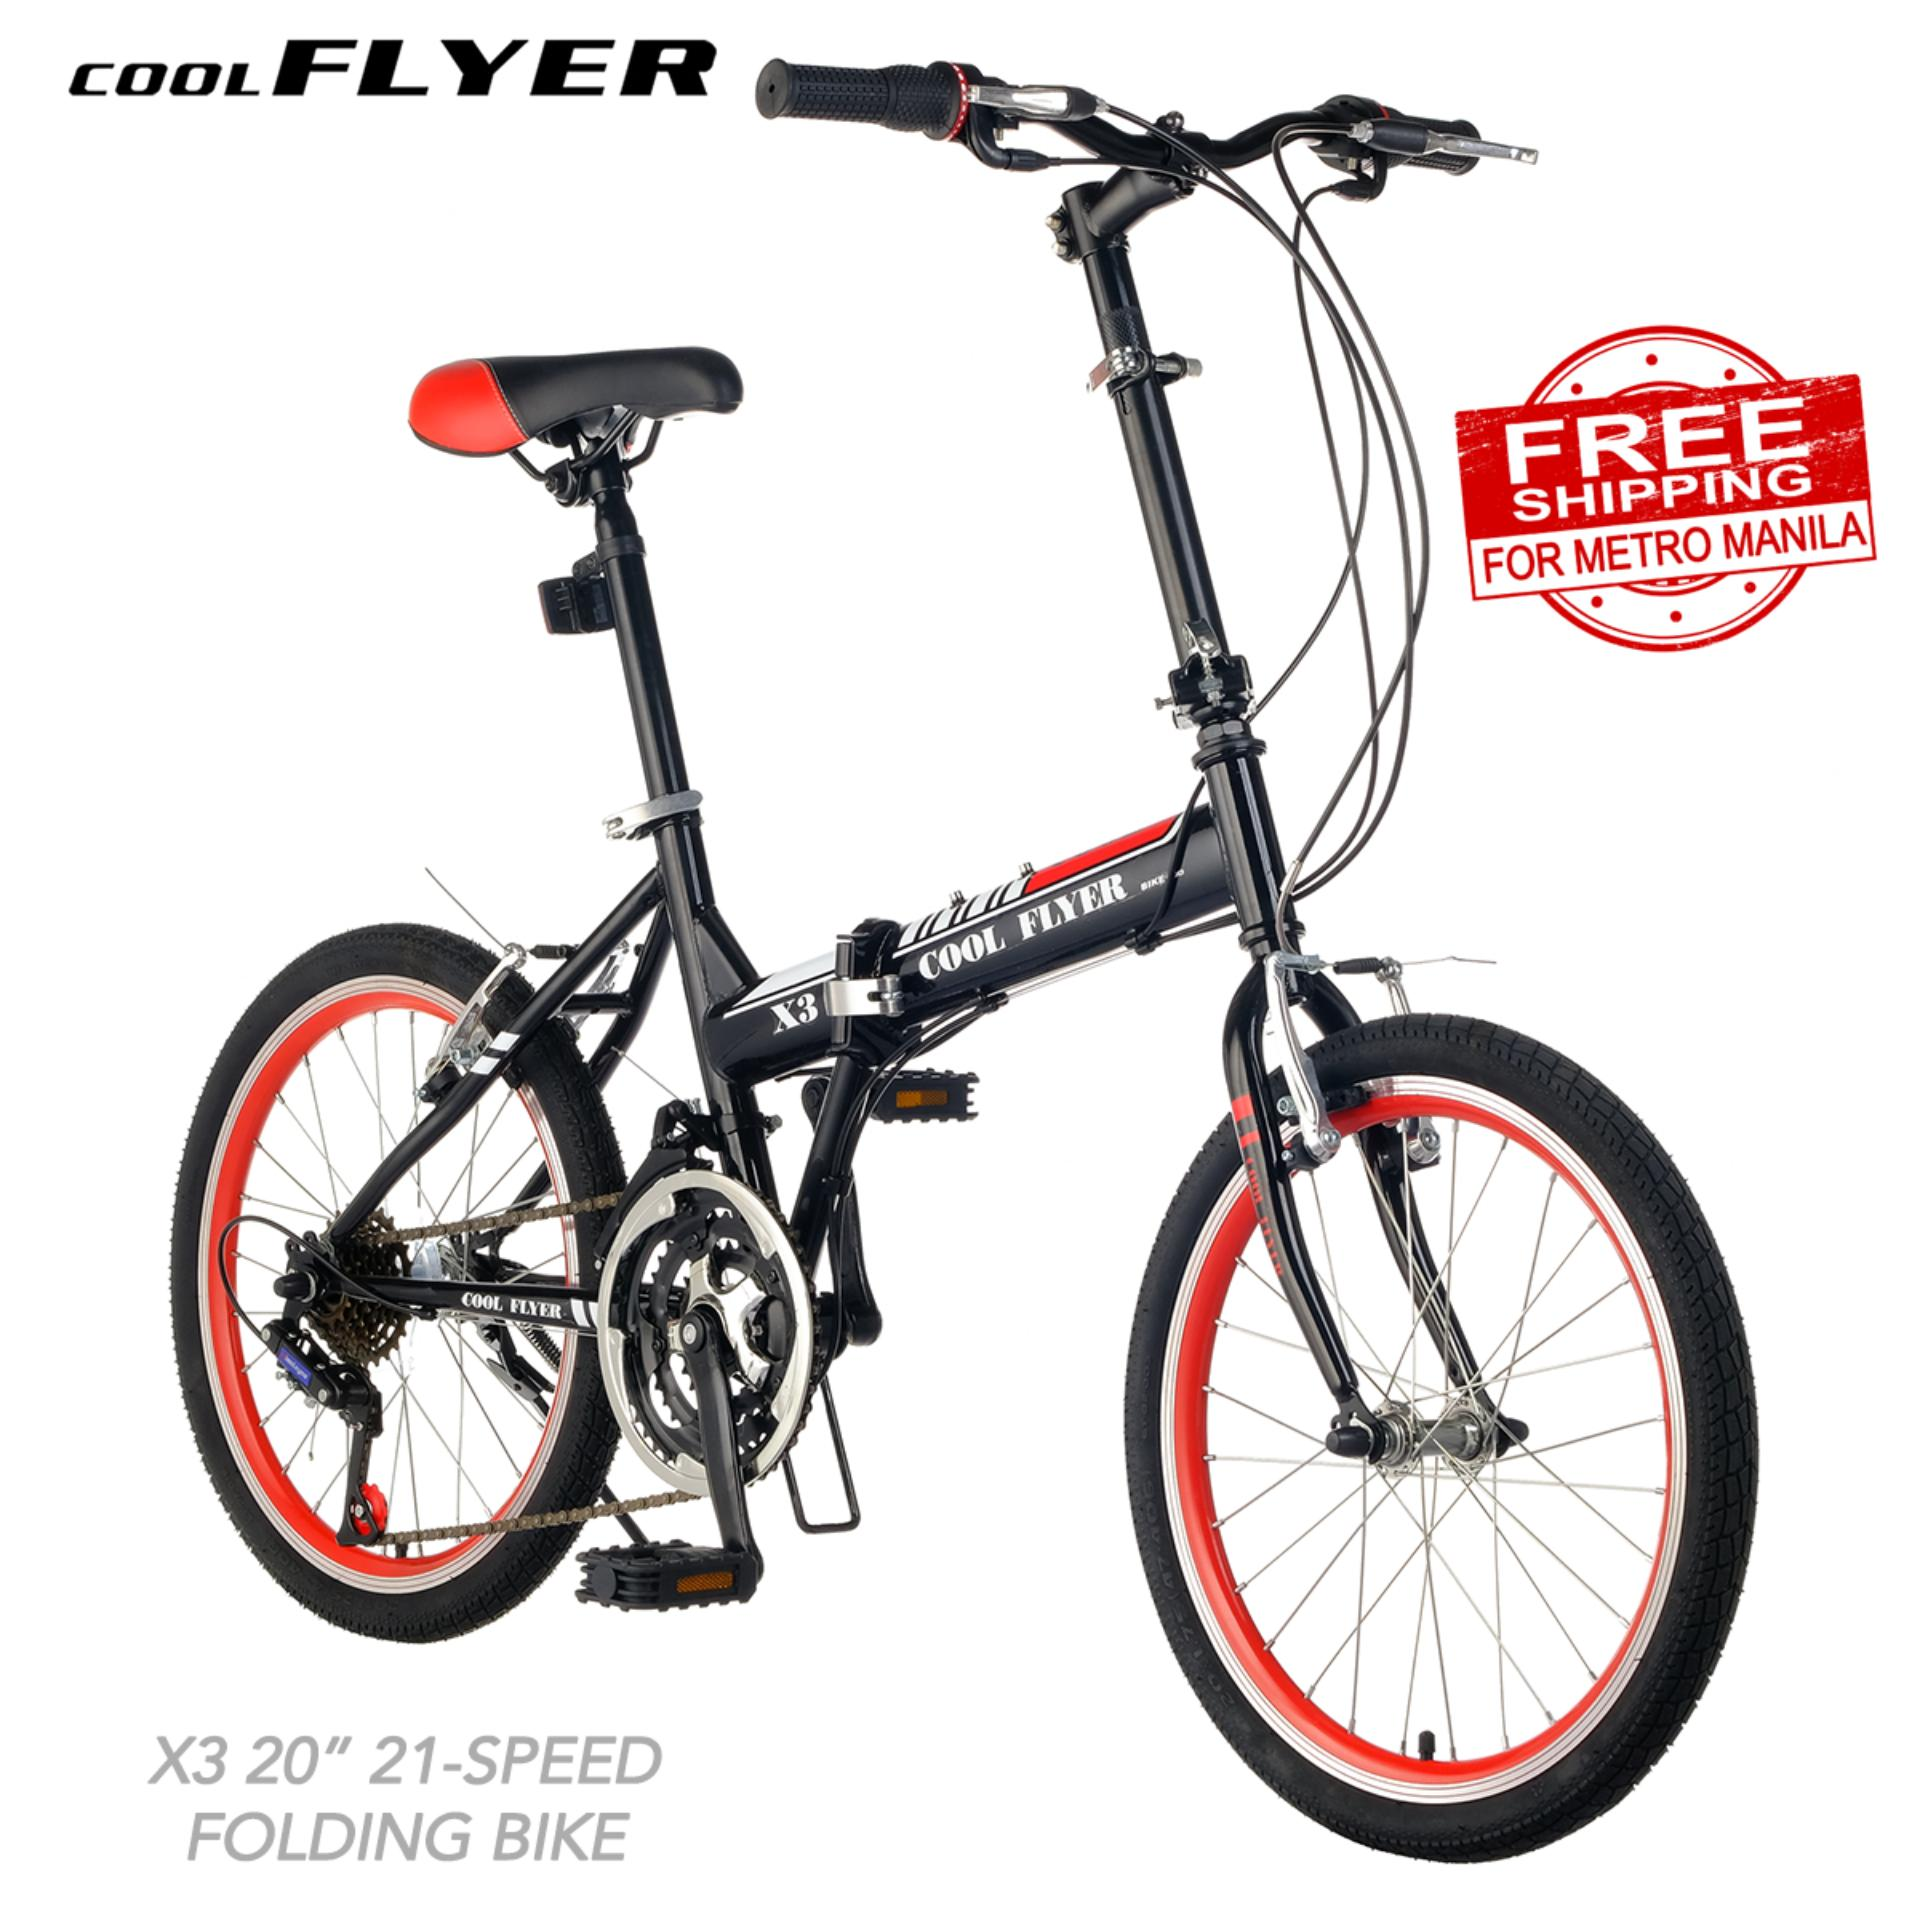 6d28b3bd79a Folding Bike for sale - Portable Bike Online Deals & Prices in ...